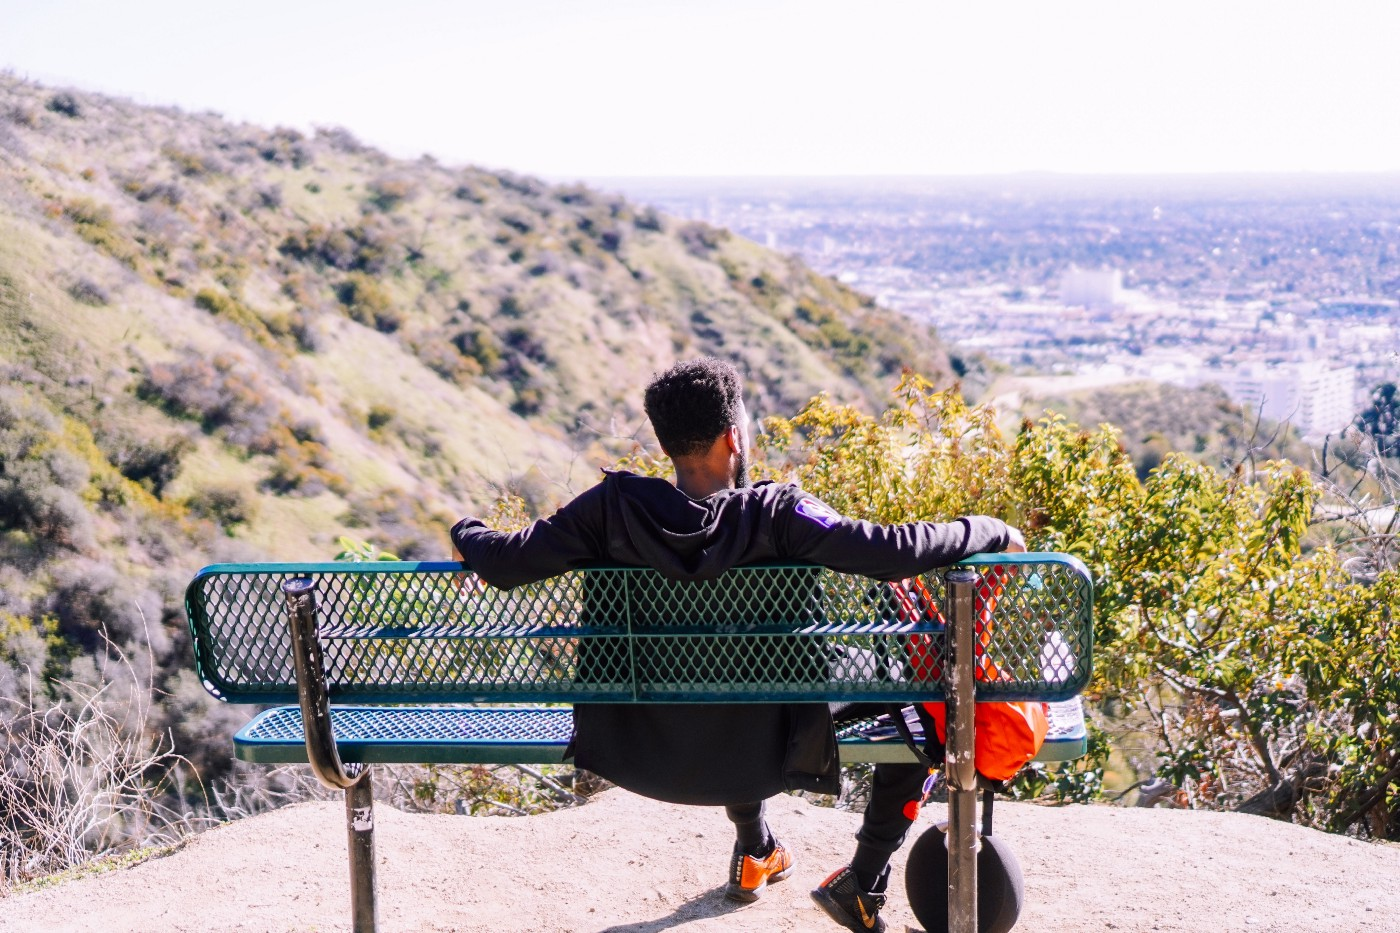 A man sitting on a bench looking out over a vista.